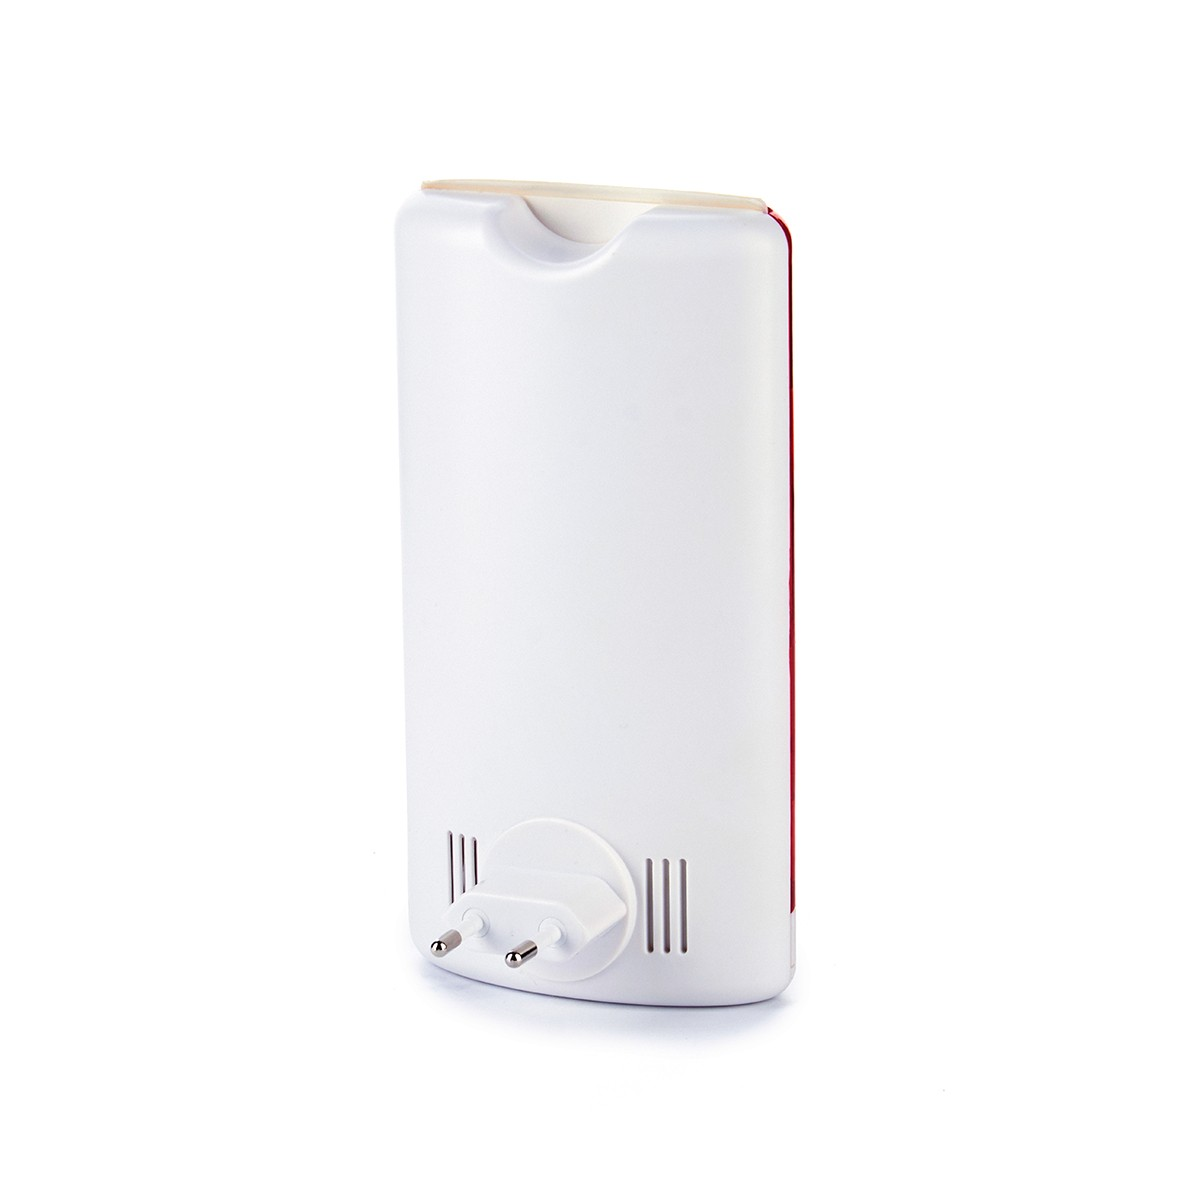 Mini Cattura Insetti Led 4 W